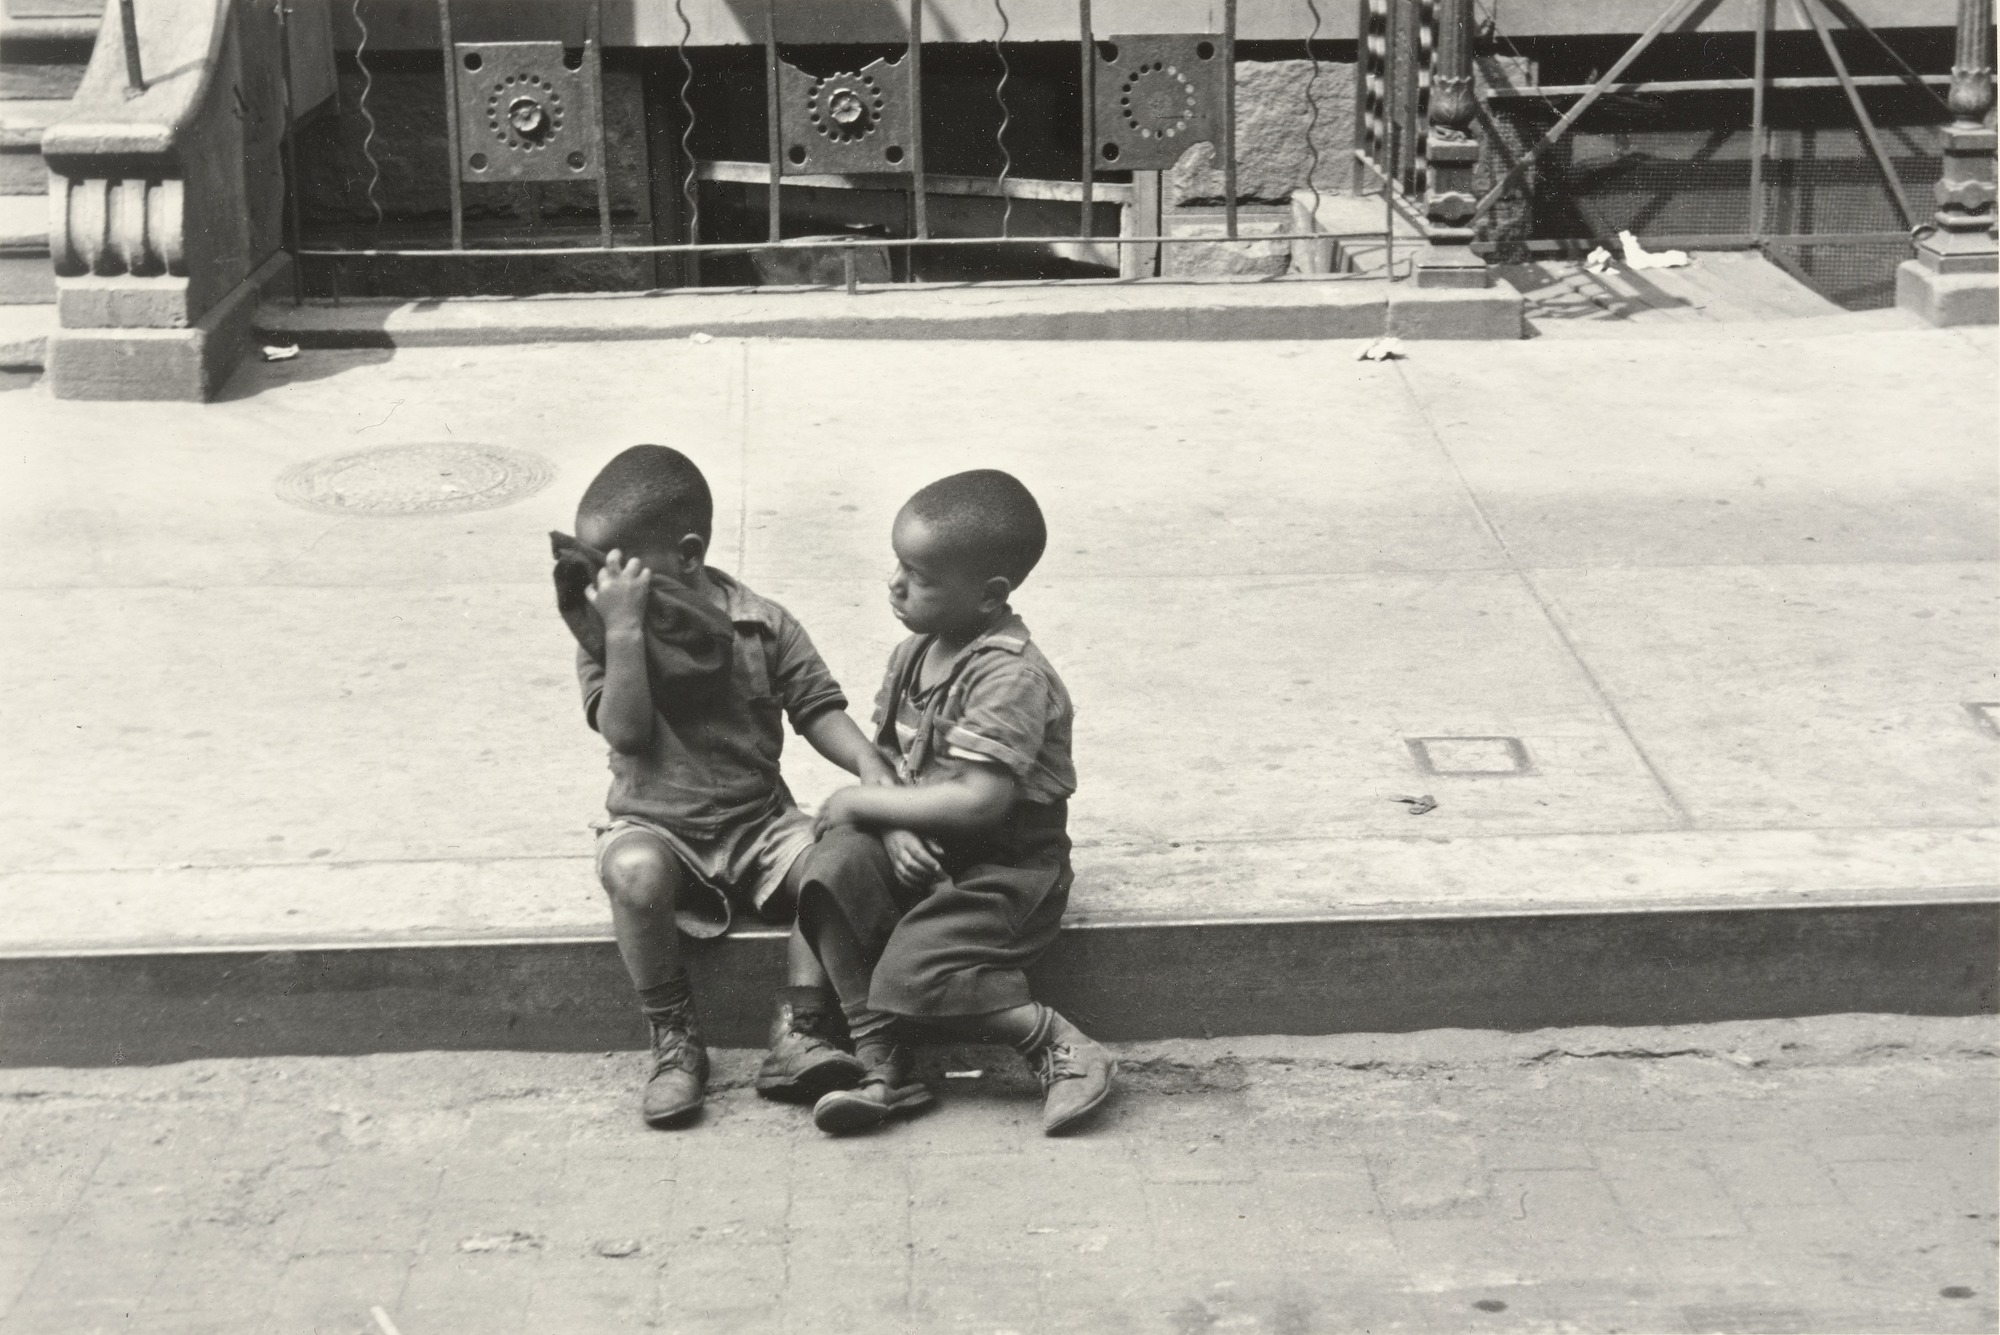 Two boys sitting on a curb in New York